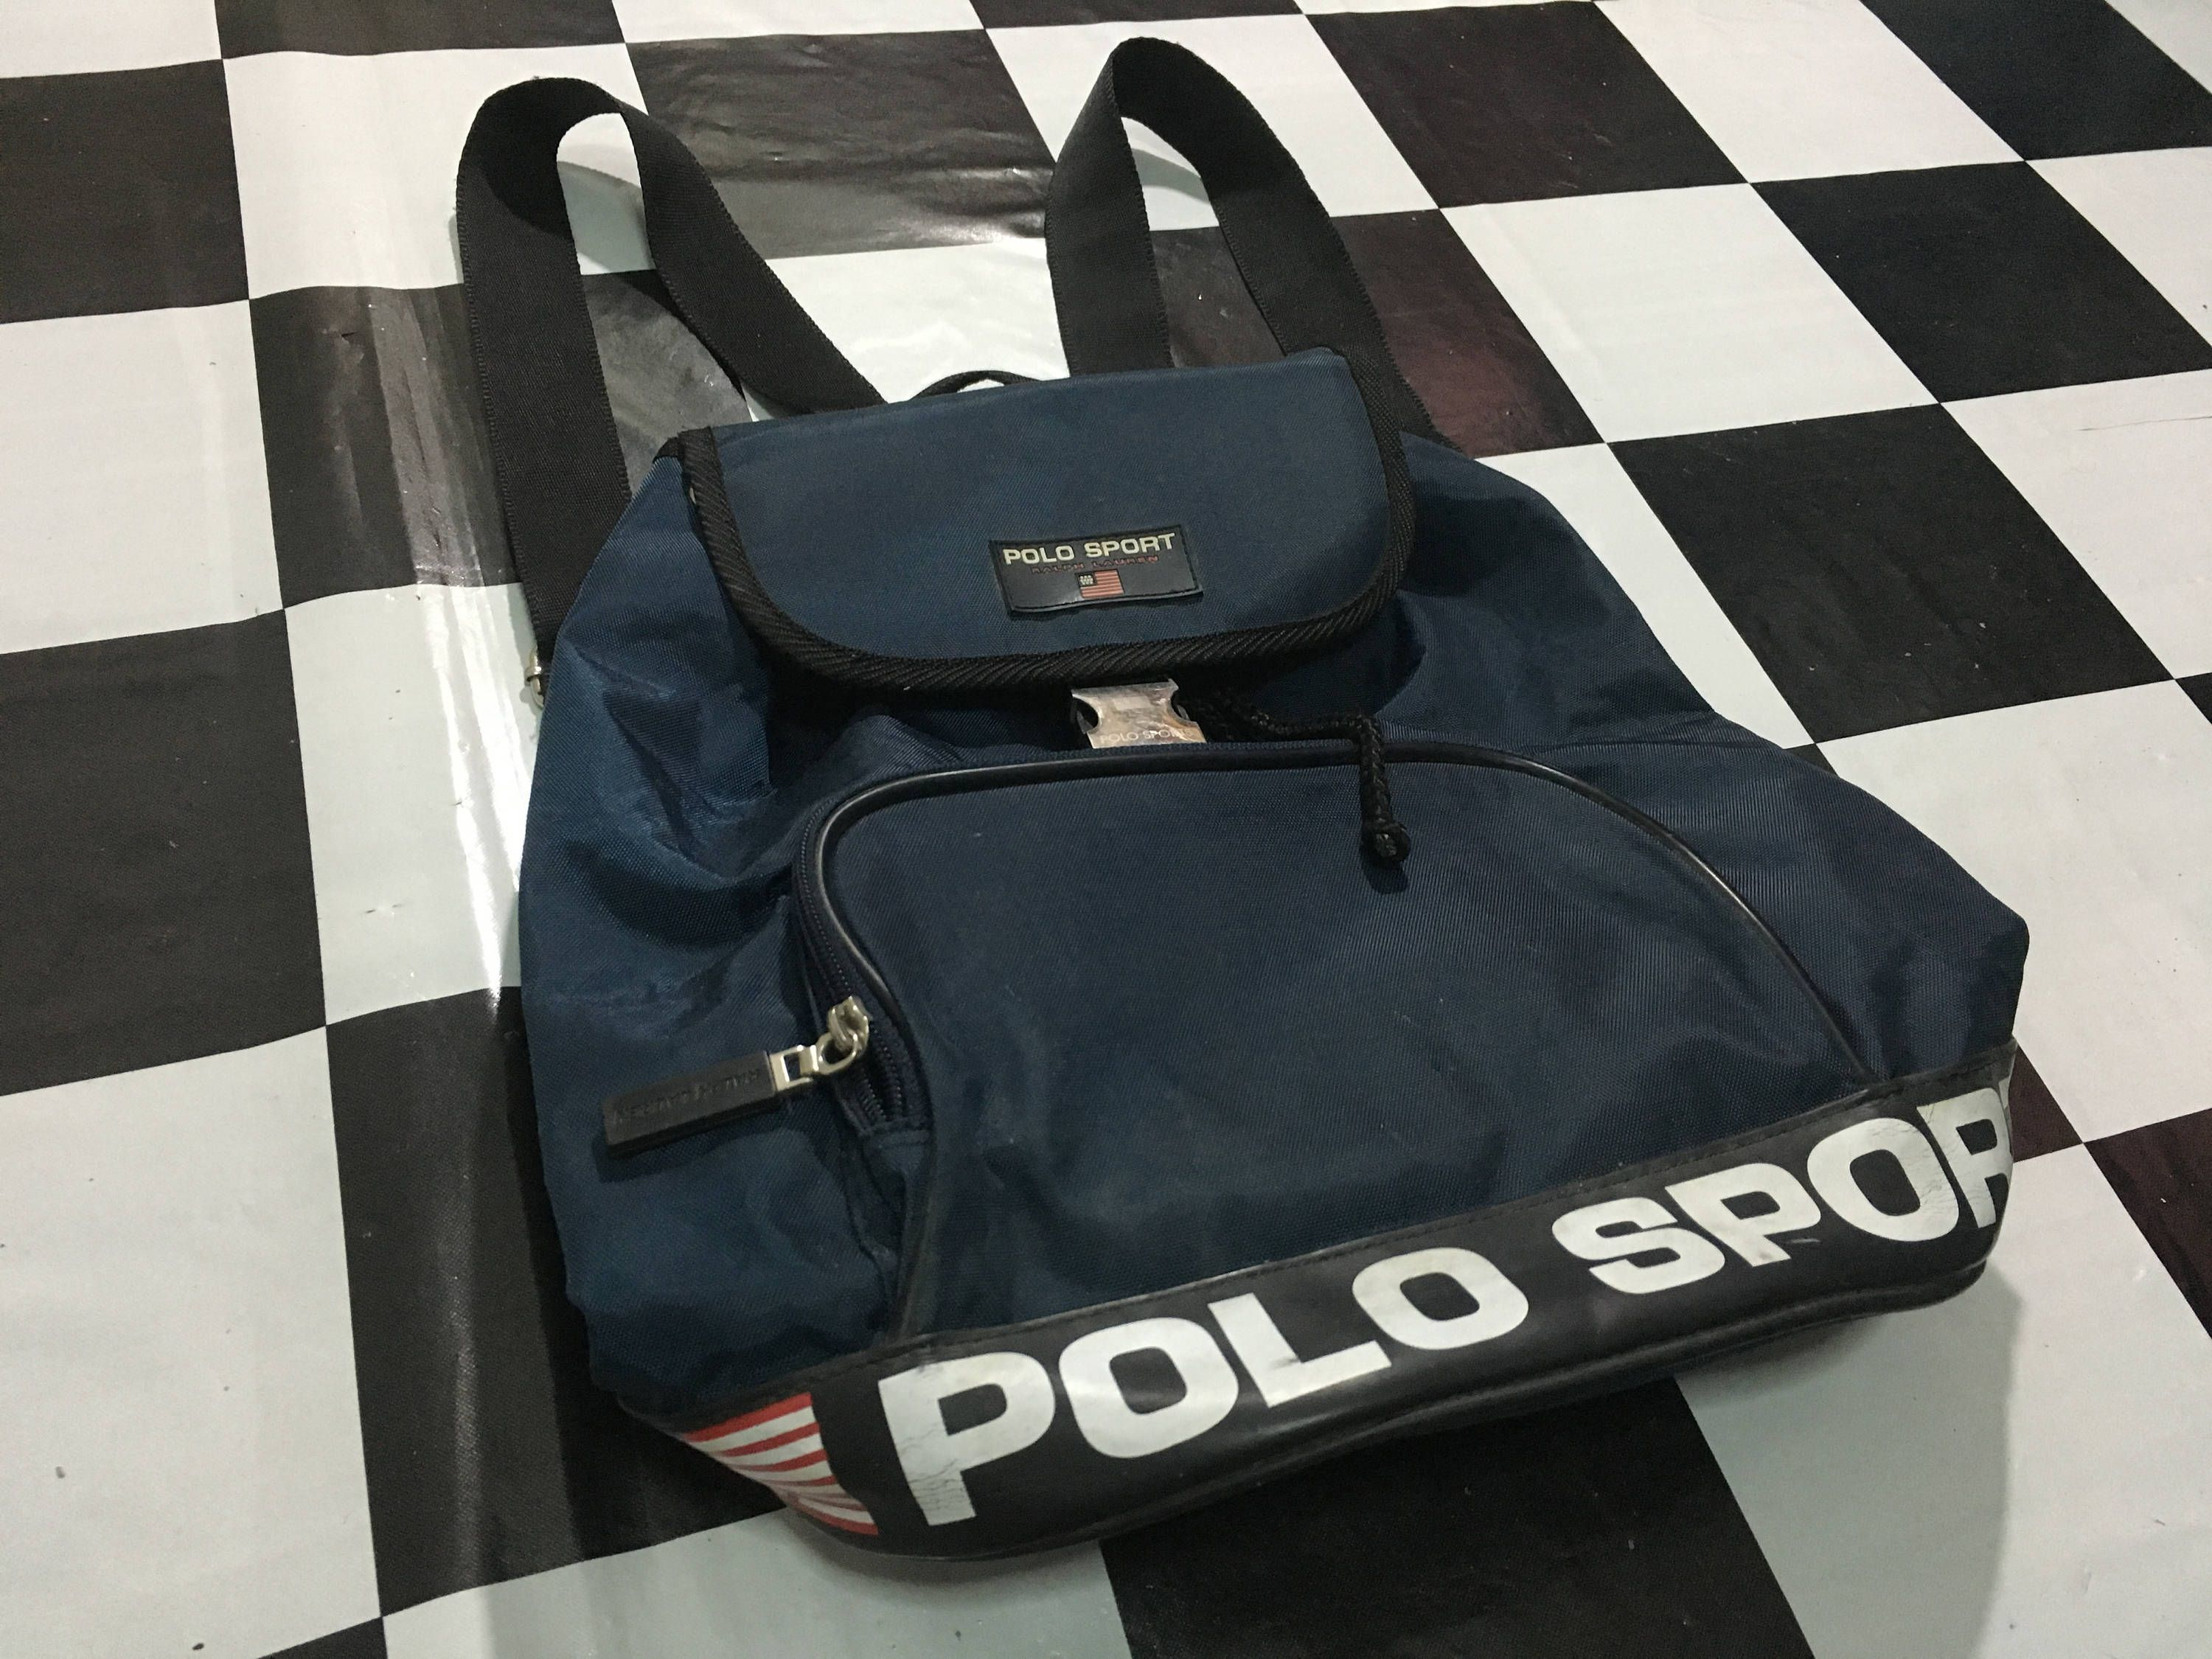 Vintage Polo sport backpack spell out logo on sash polo sport bag Excellent  condition Polo sport ralph lauren by AlivevintageShop on Etsy c086d6b8bb6